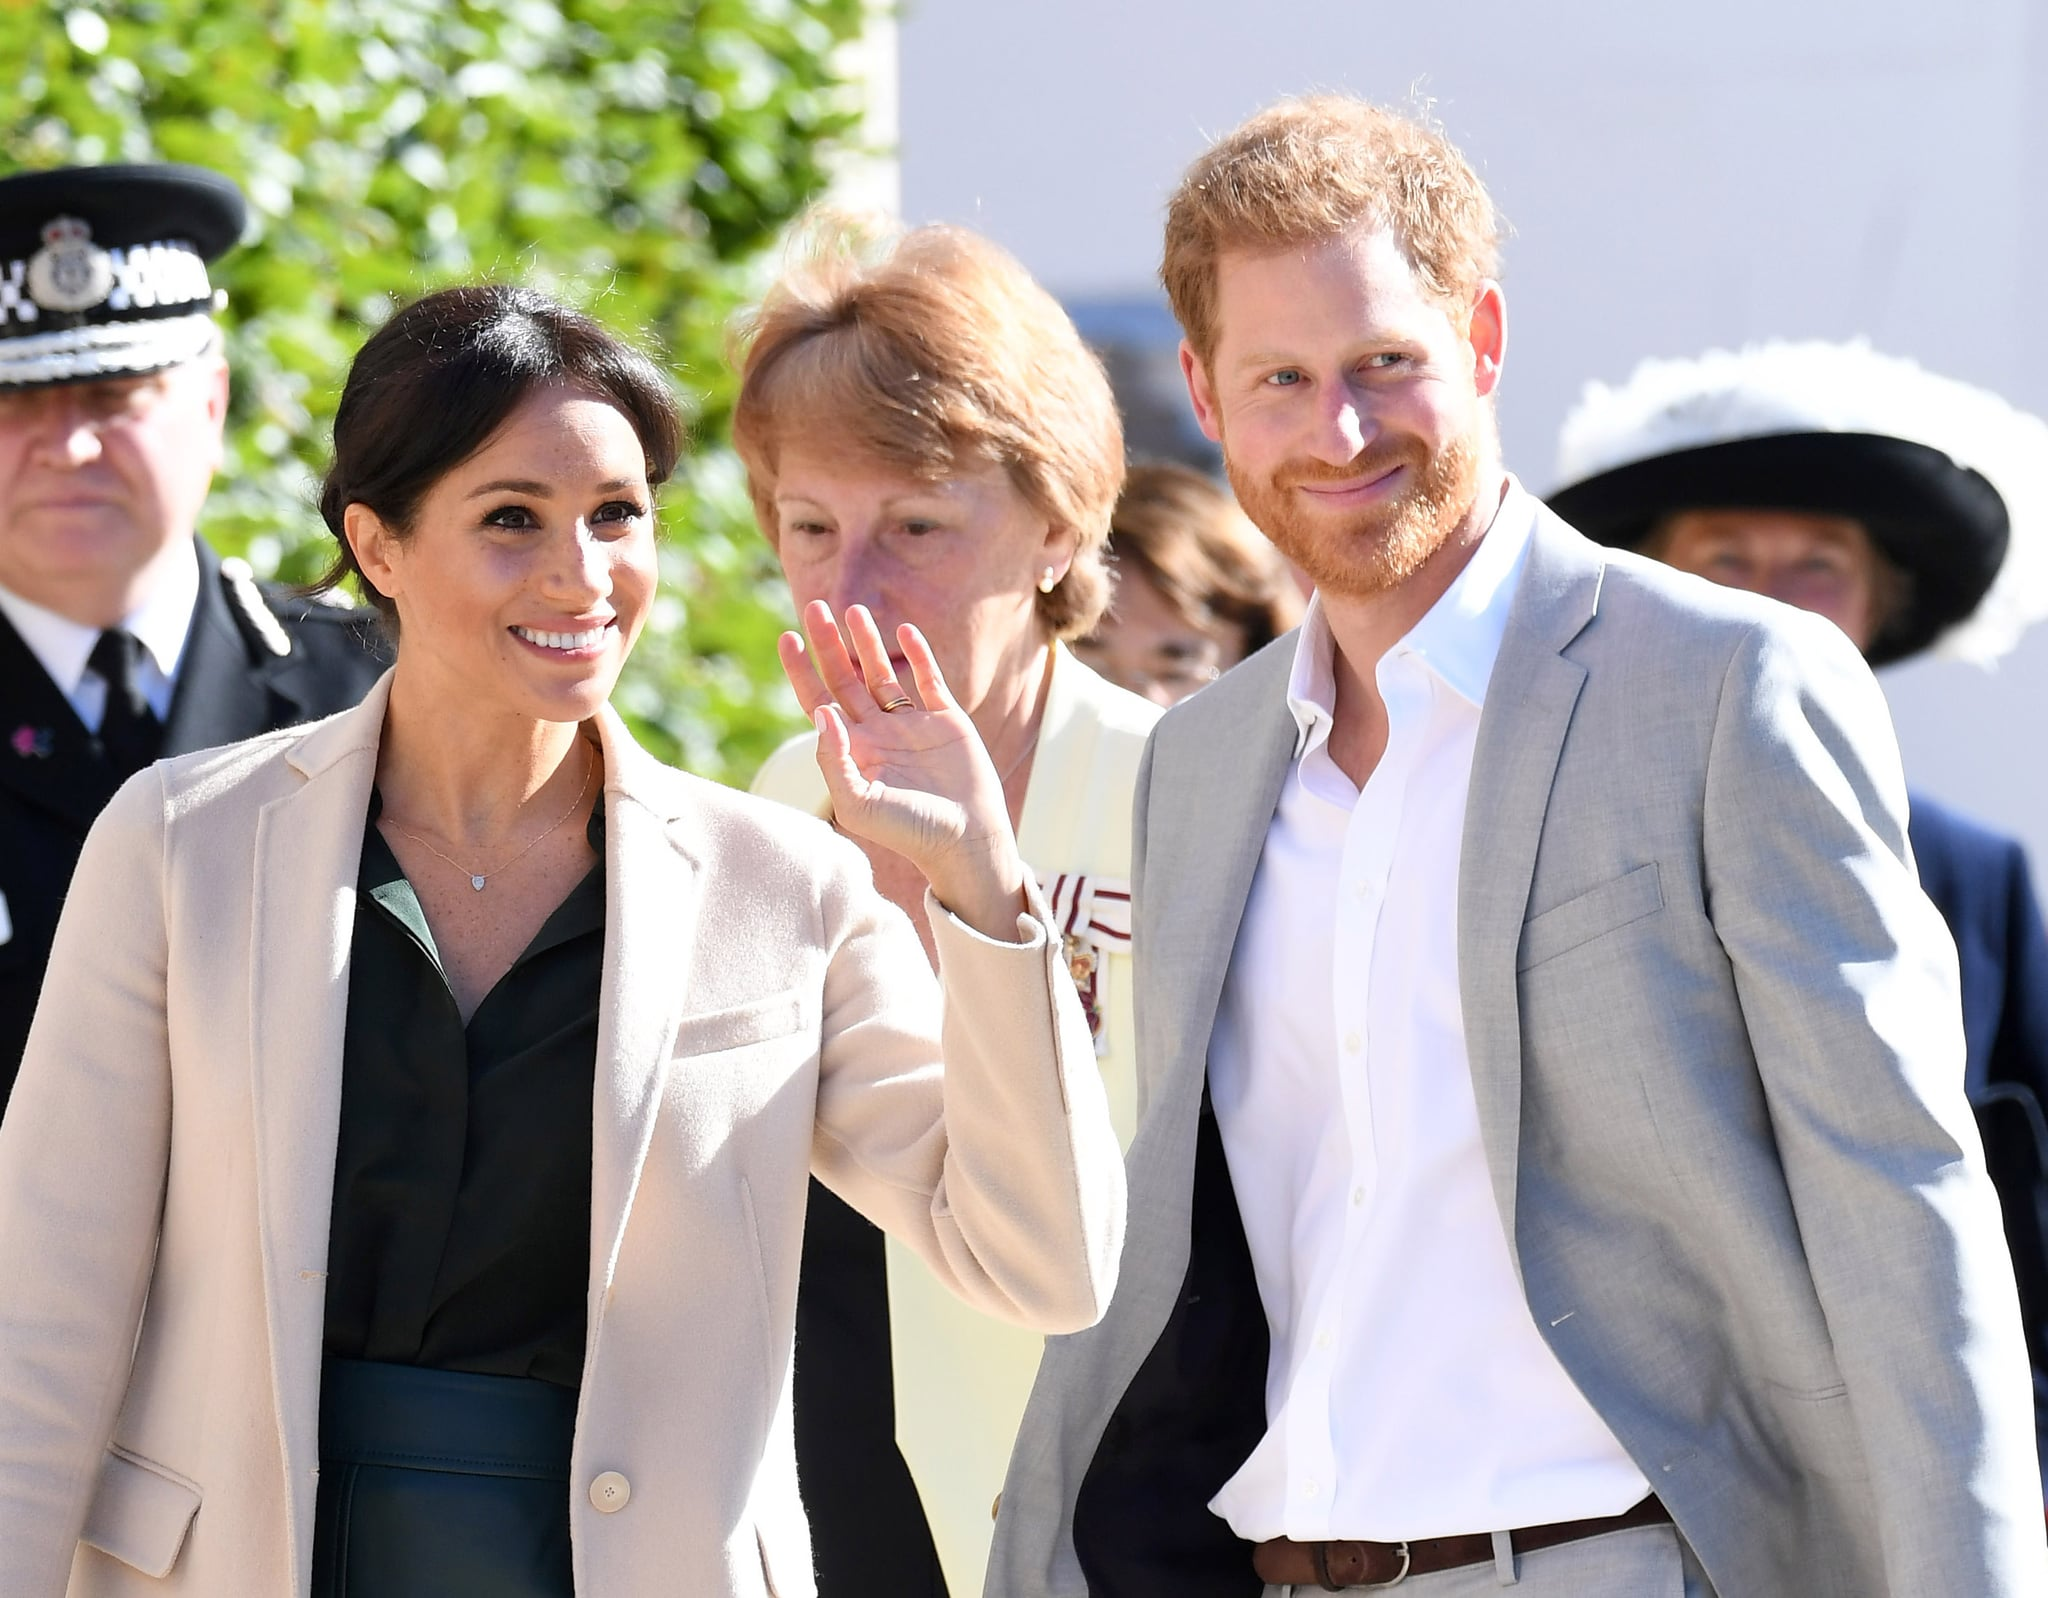 CHICHESTER, UNITED KINGDOM - OCTOBER 03:  (EMBARGOED FOR PUBLICATION IN UK NEWSPAPERS UNTIL 24 HOURS AFTER CREATE DATE AND TIME) Prince Harry, Duke of Sussex and Meghan, Duchess of Sussex during an official visit to Sussex on October 3, 2018 in Chichester, United Kingdom.  The Duke and Duchess married on May 19th 2018 in Windsor and were conferred The Duke & Duchess of Sussex by The Queen.  (Photo by Karwai Tang/WireImage)